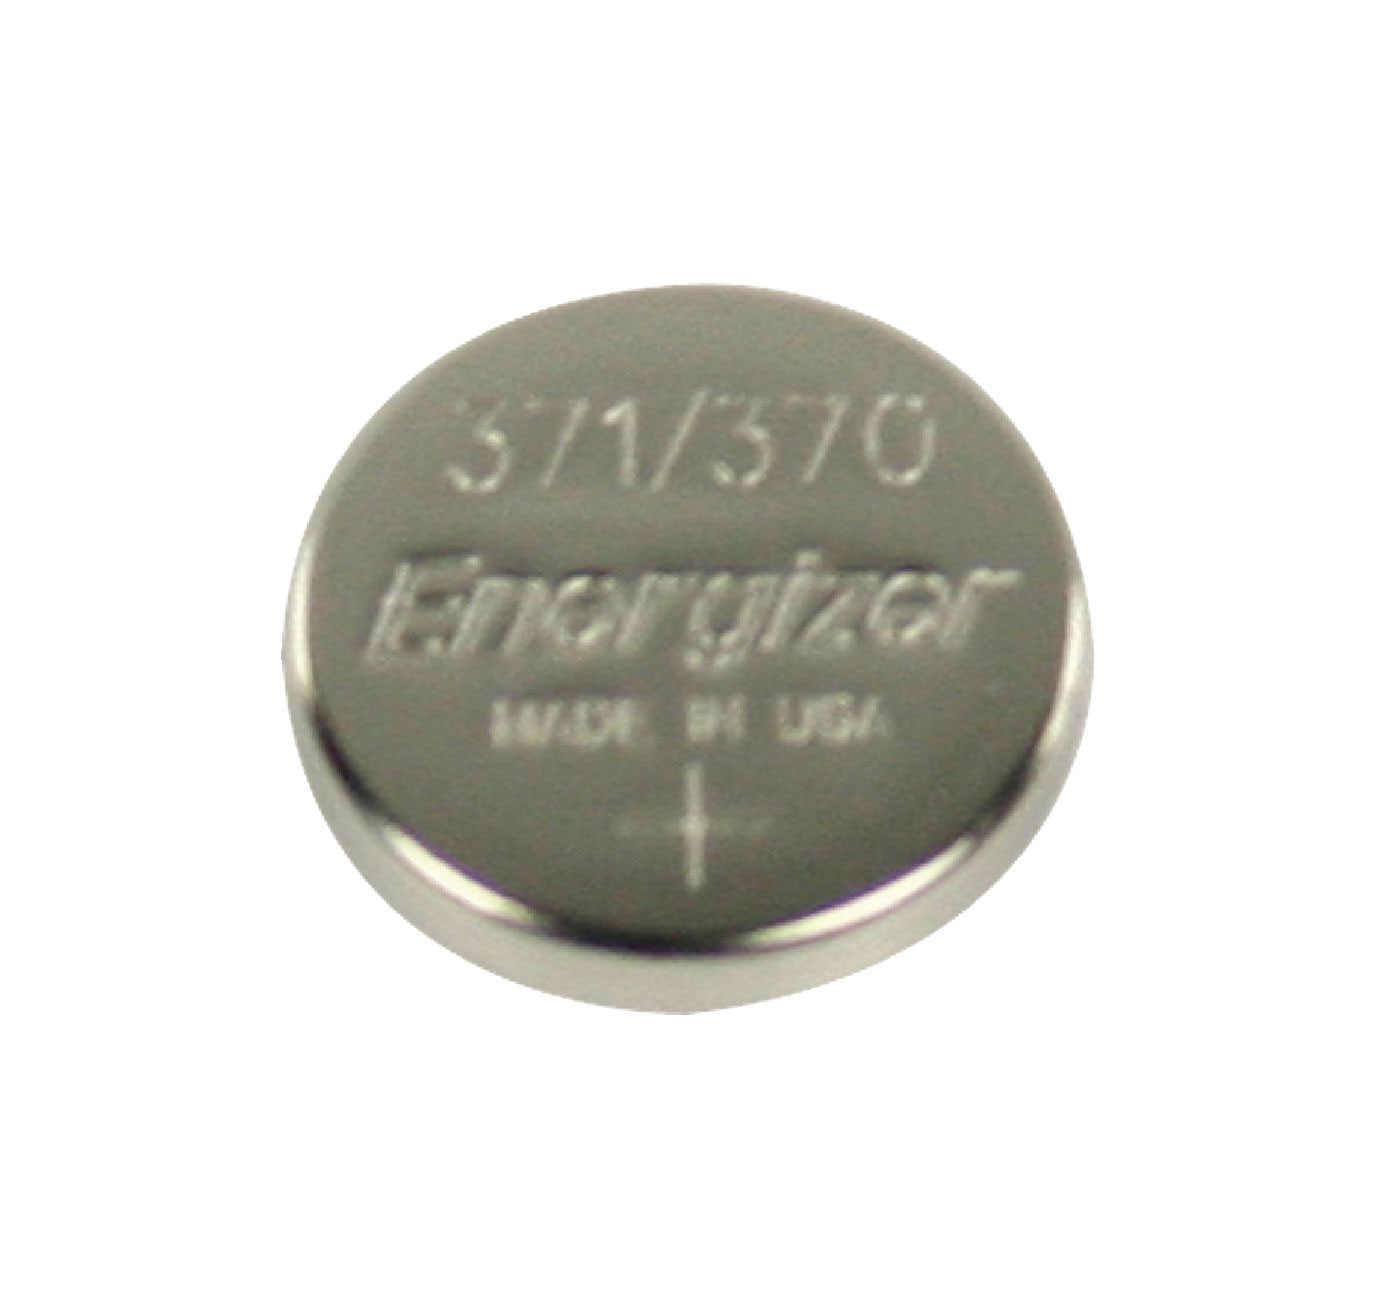 371-370 Button Cell Silver Oxide Battery